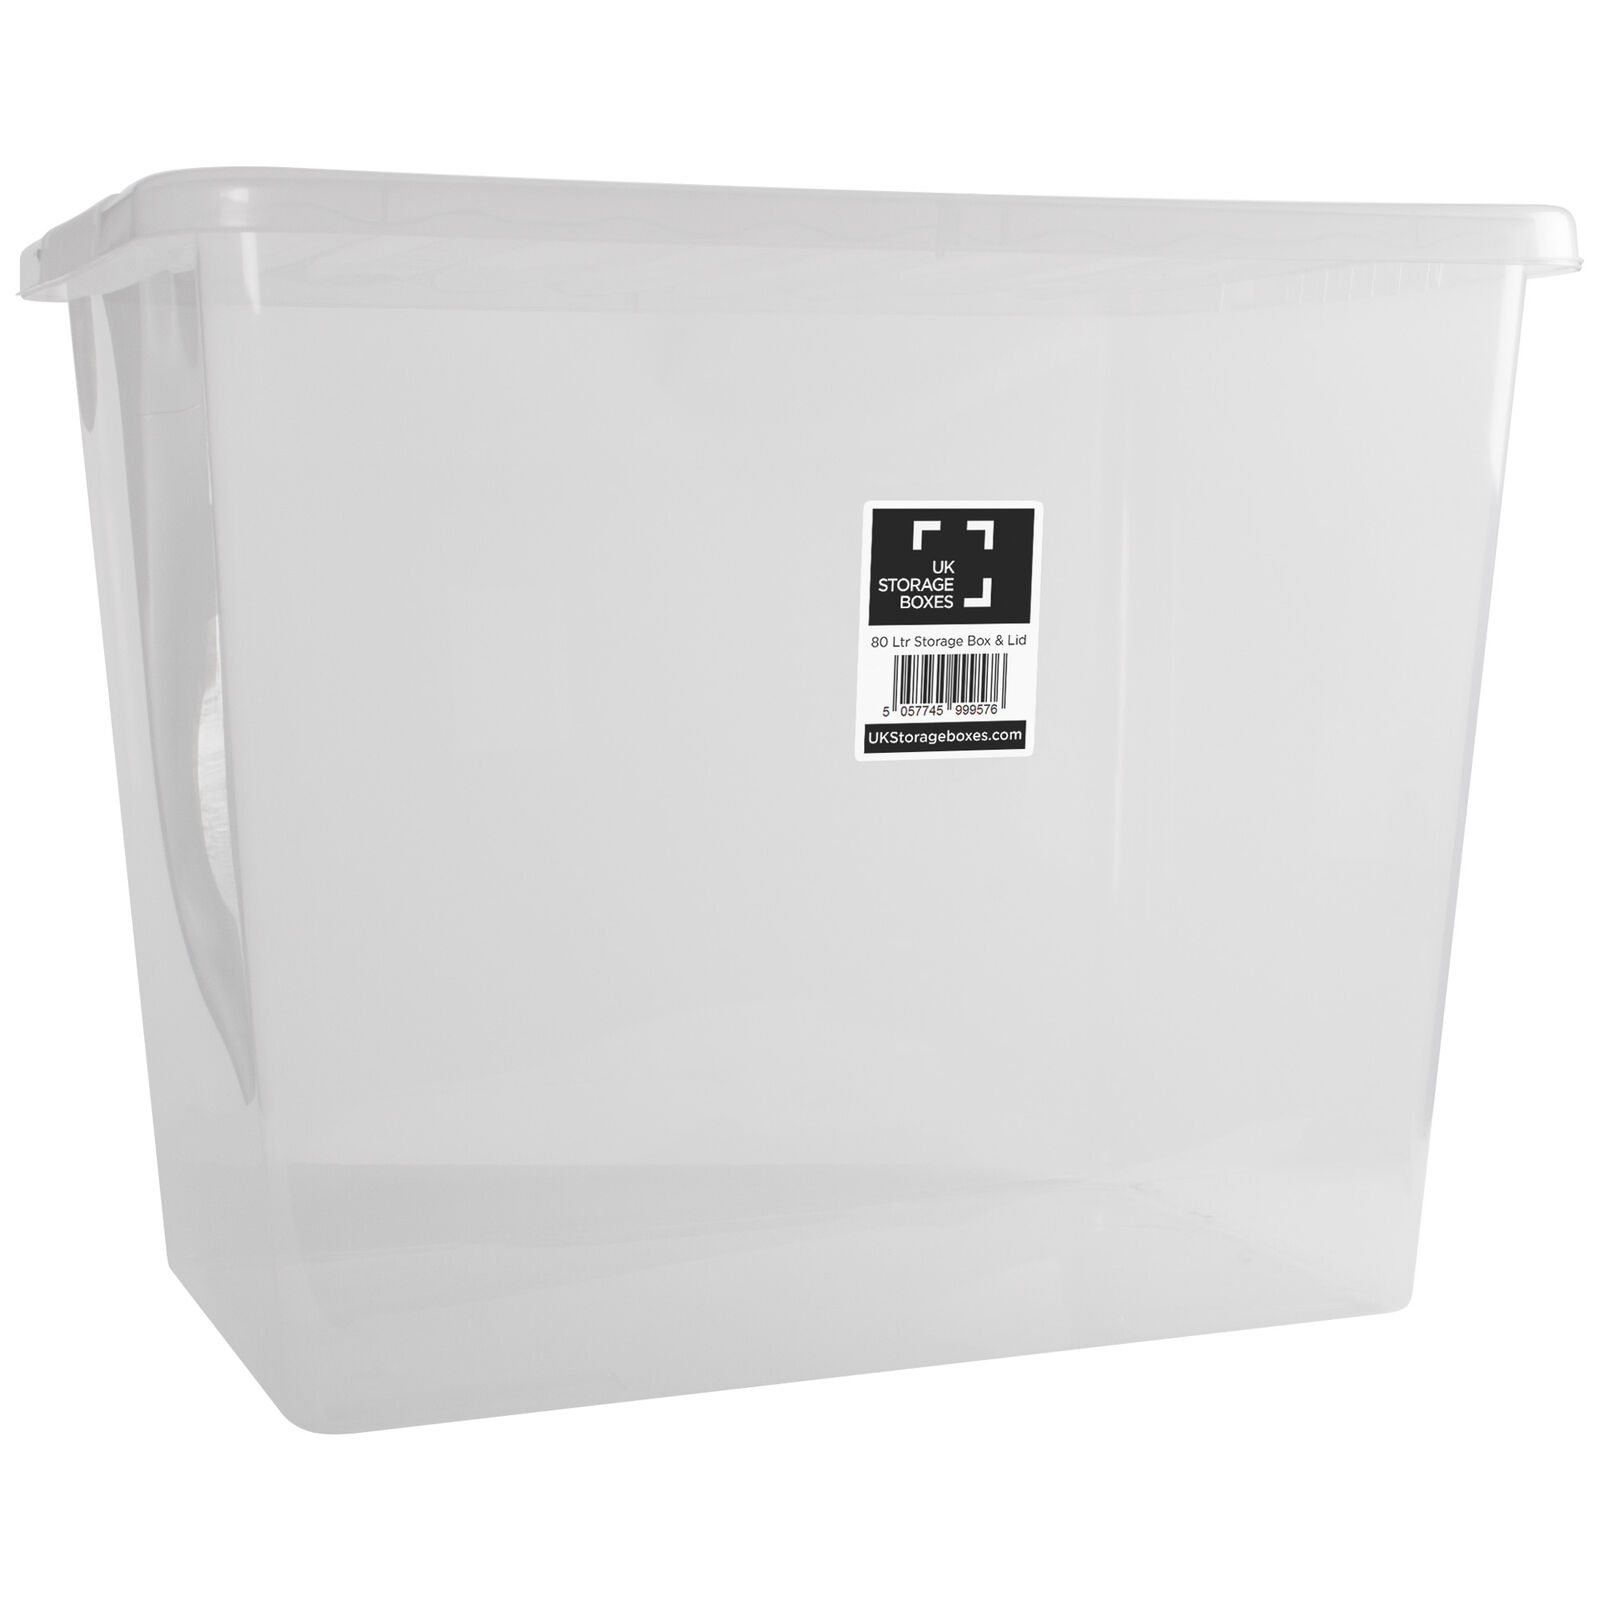 5 X Very Large Clear Plastic Storage Boxes 80 Litre/ 60cm With Lids New. | eBay  sc 1 st  eBay & 5 X Very Large Clear Plastic Storage Boxes 80 Litre/ 60cm With Lids ...